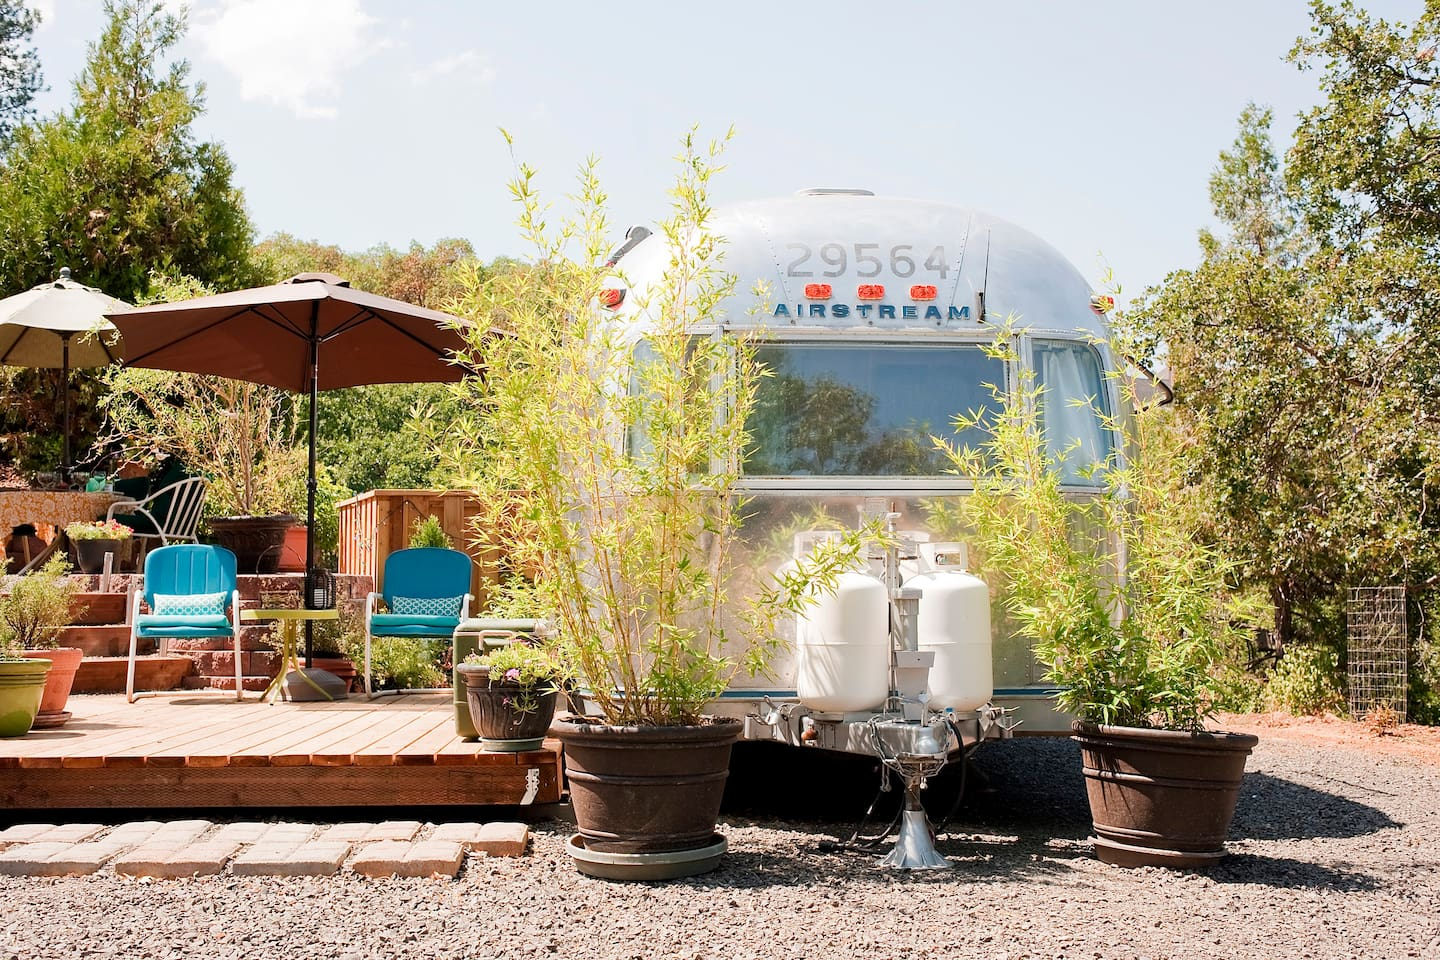 Your 1973 vintage Airstream with outdoor spaces.